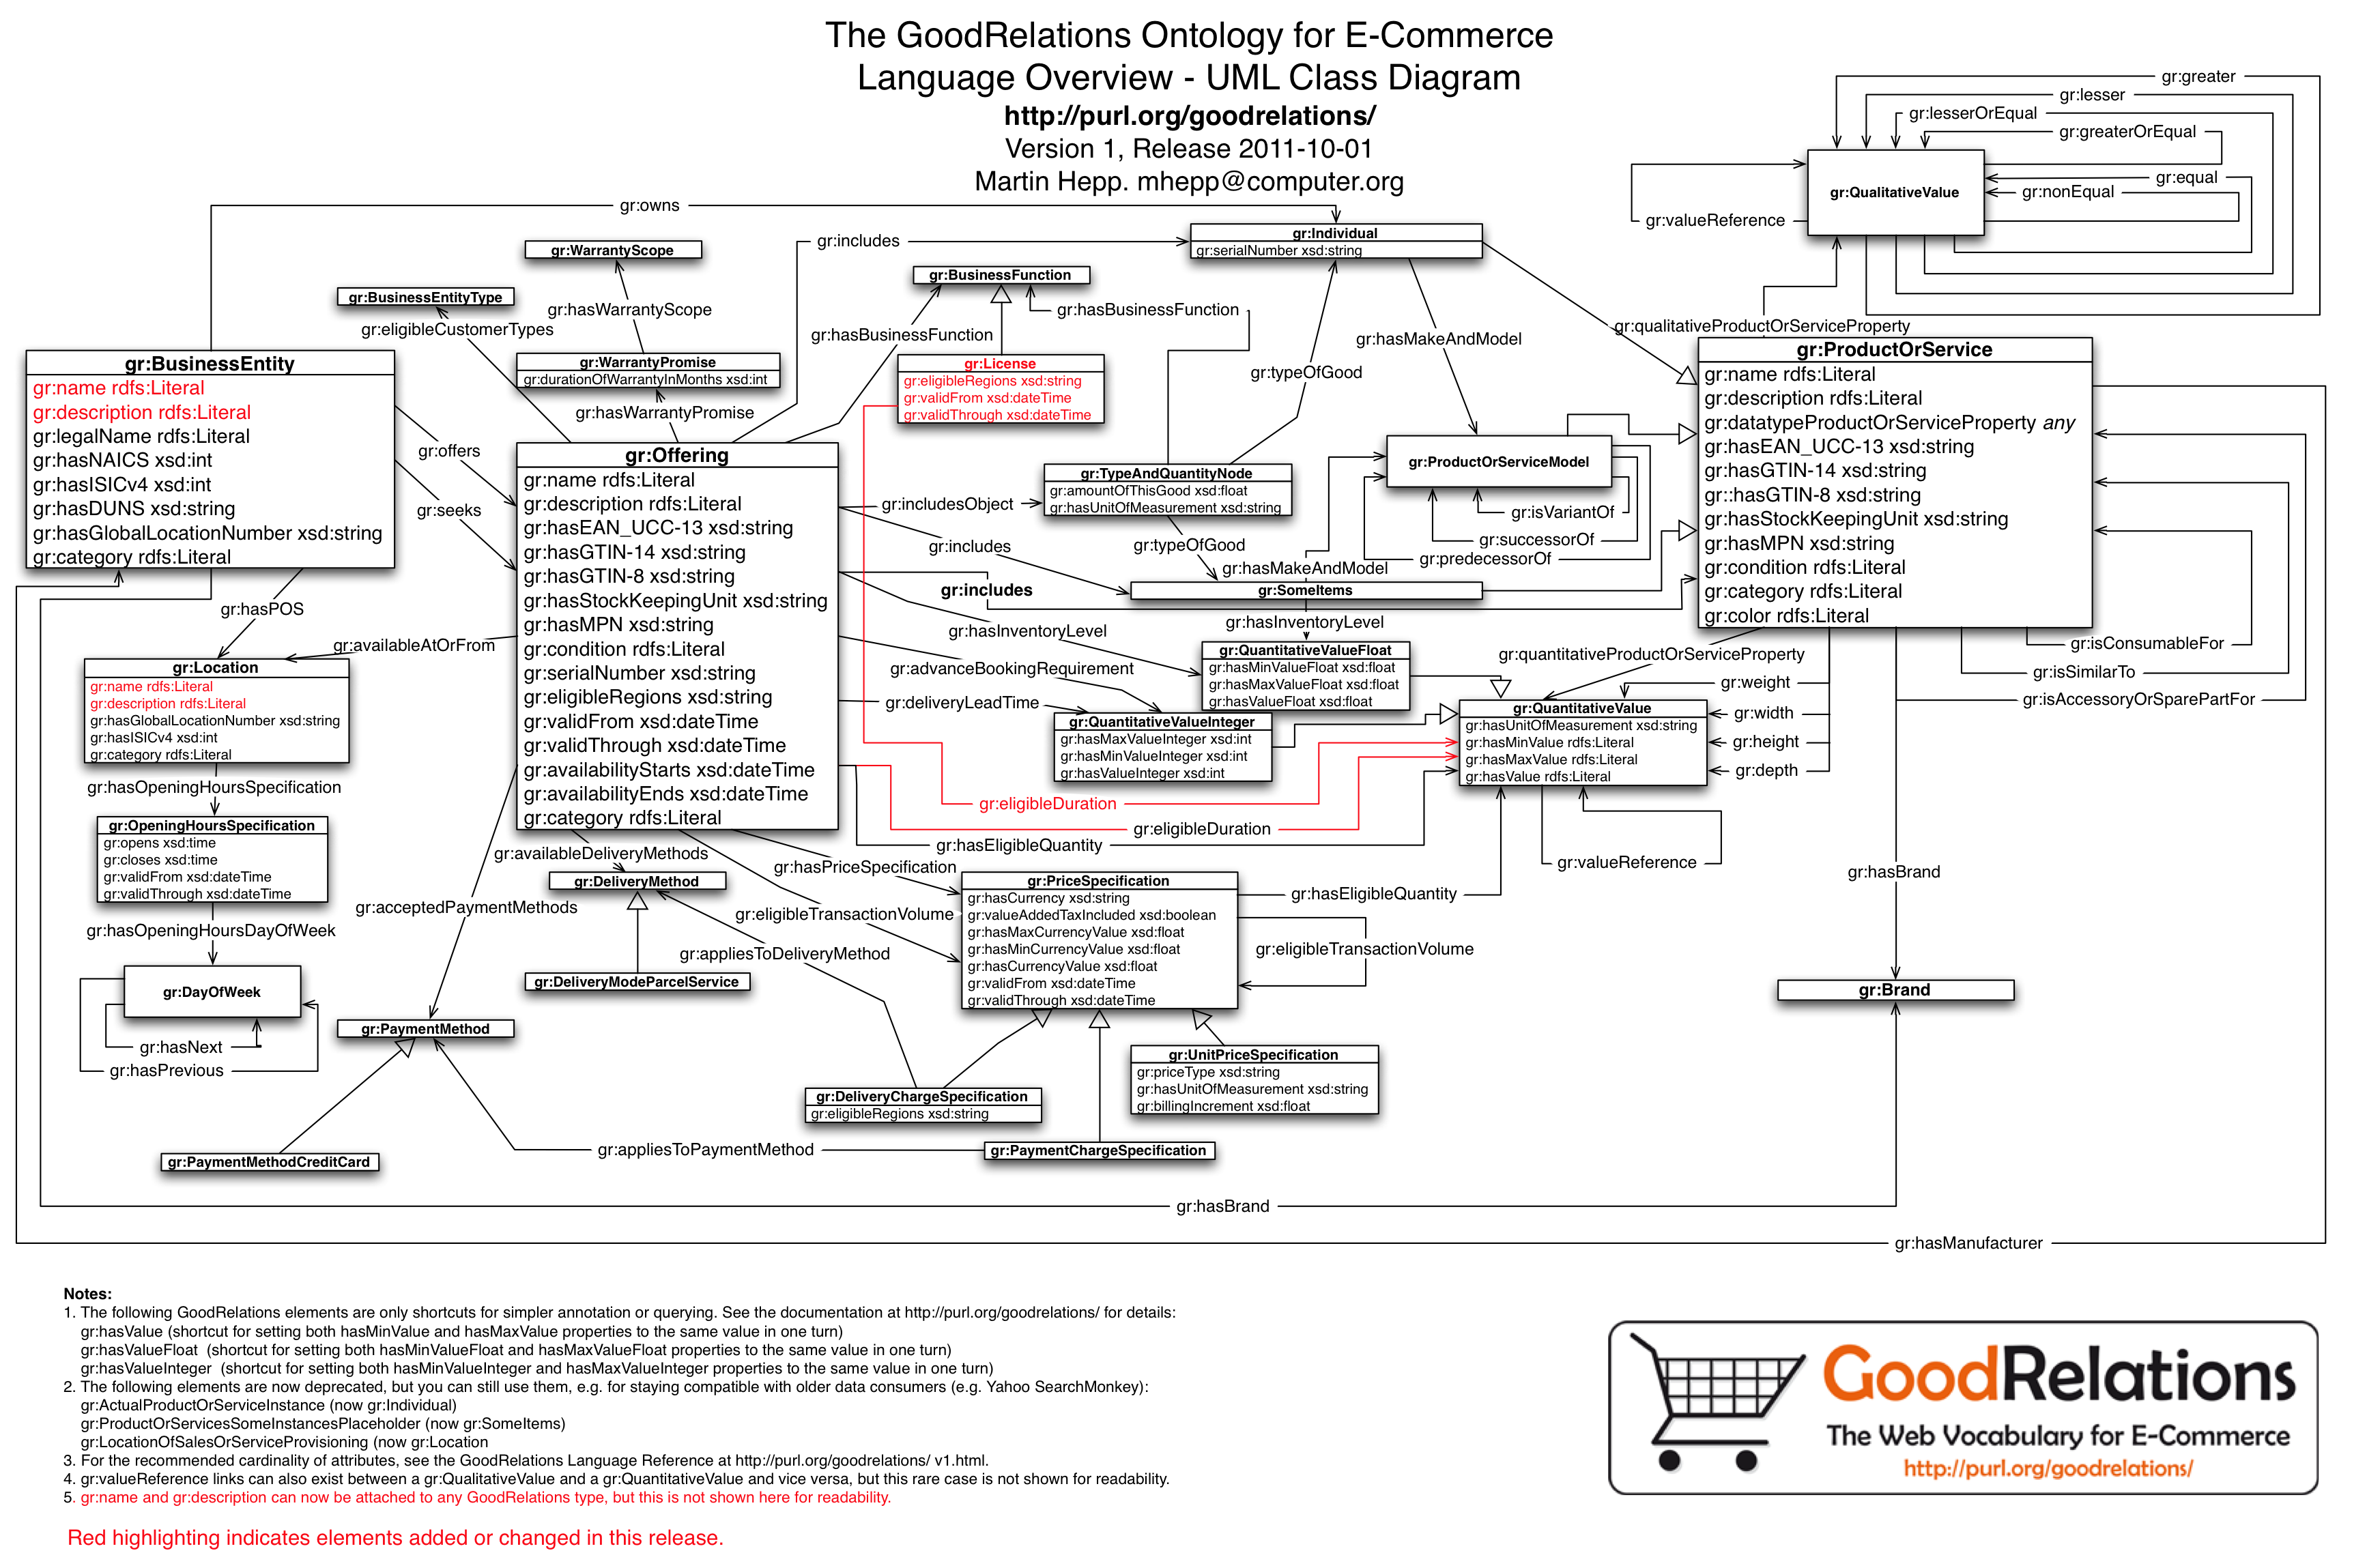 GoodRelations e-commerce vocabulary (click to enlarge)